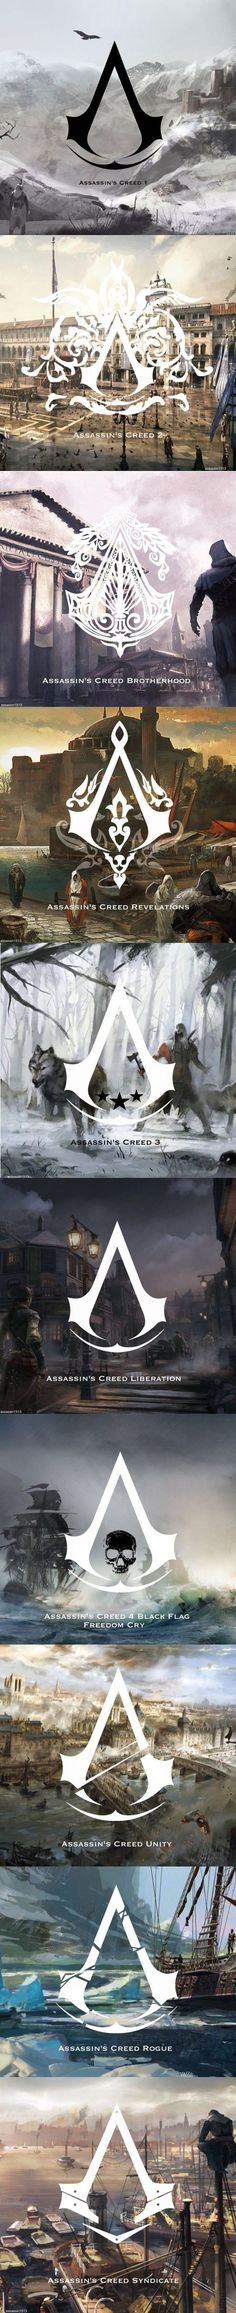 Assassins creed. Which assassin is the best? I honestly thing Edward Kenway is the best because he is so bad ass, he decided to be a pirate, and an assassin, and he still manages both just fine! TRY AND TOP THAT!!